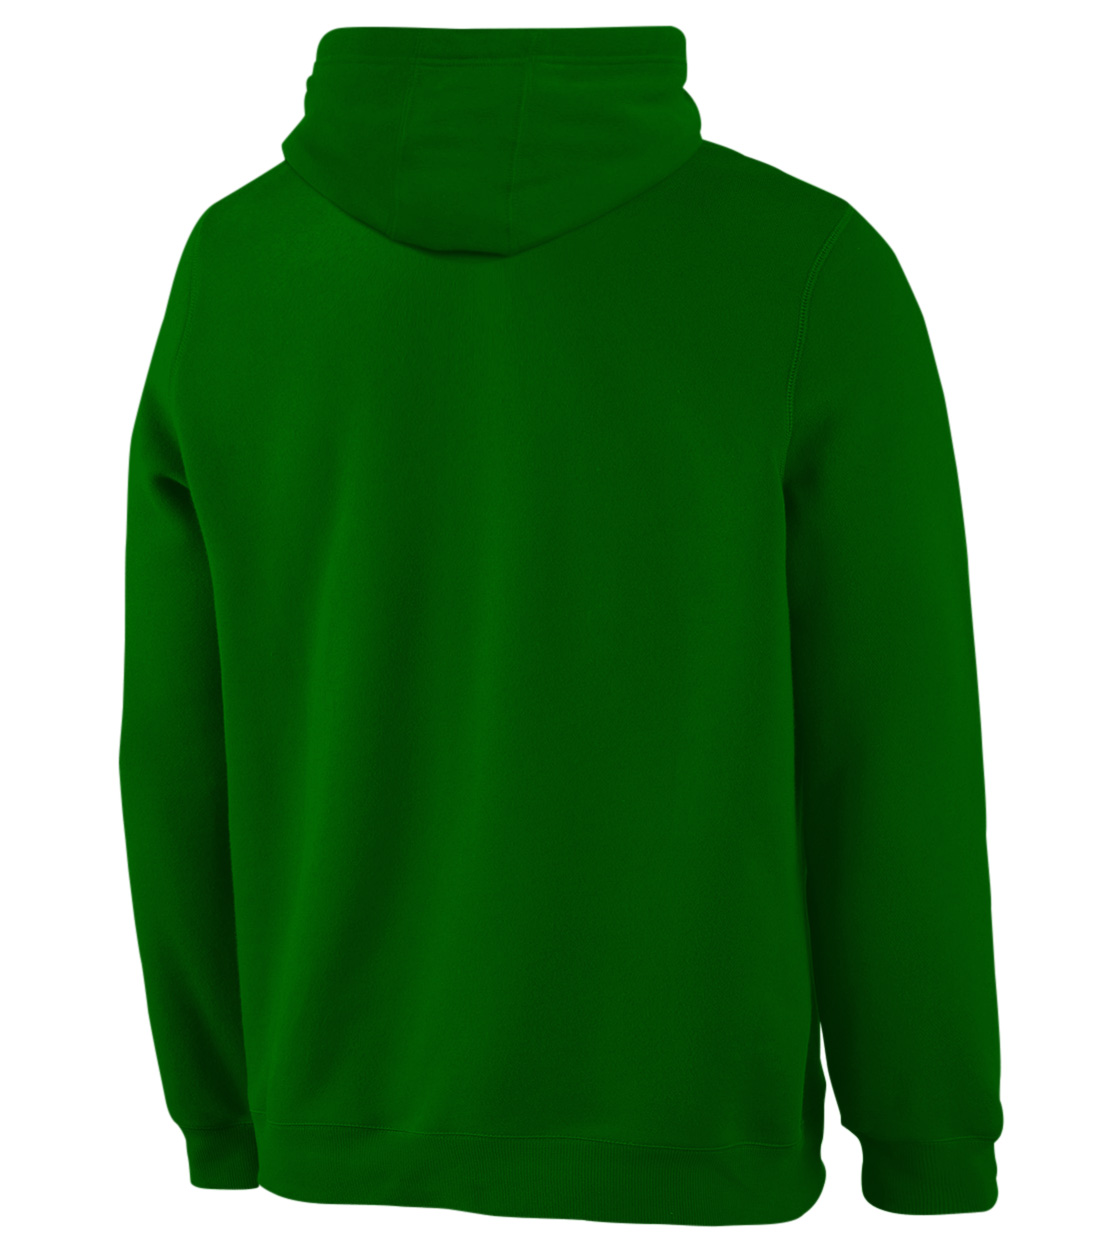 Boston Celtics Logo Hoodie (HD-grnn-28-NBA-BSTN-LOGO)